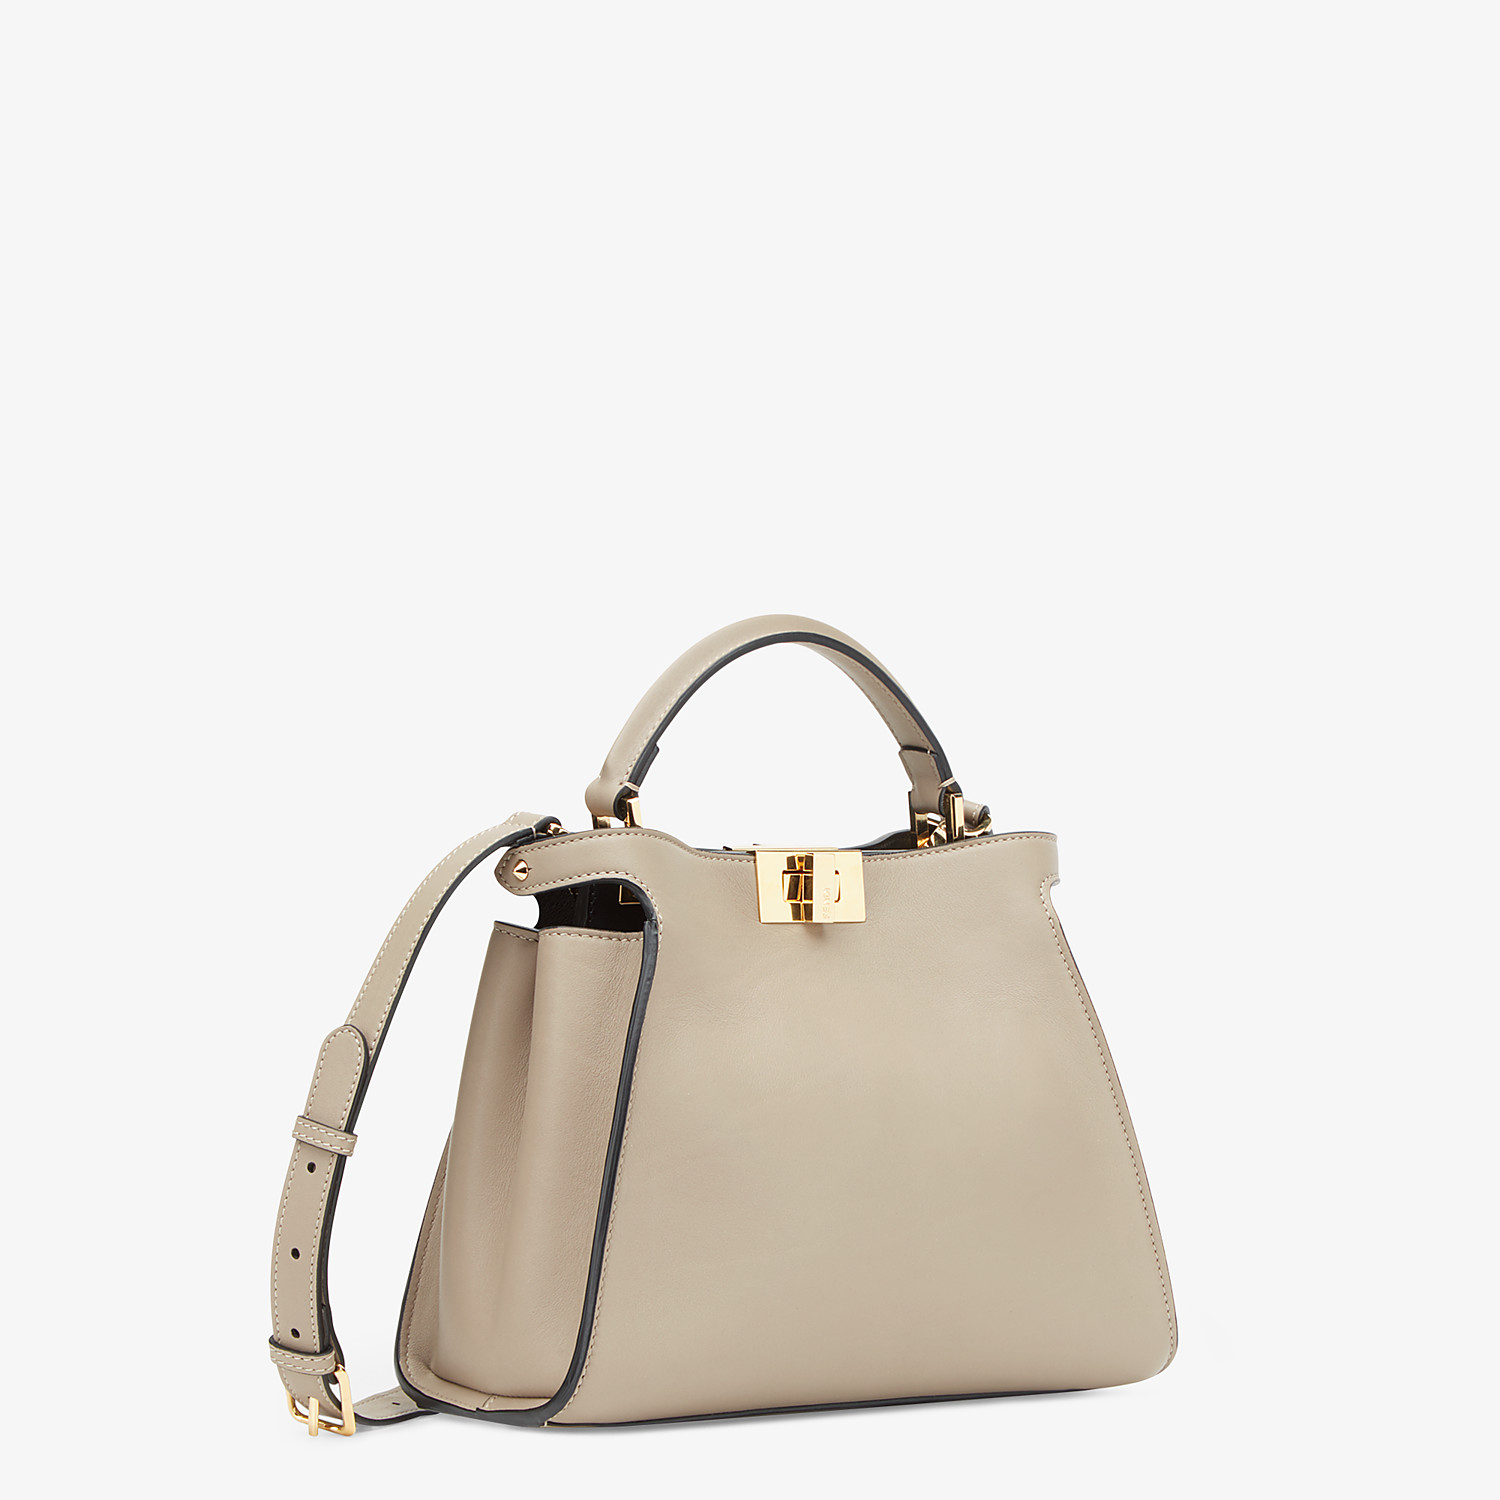 FENDI PEEKABOO ICONIC ESSENTIALLY - Dove grey leather bag - view 2 detail